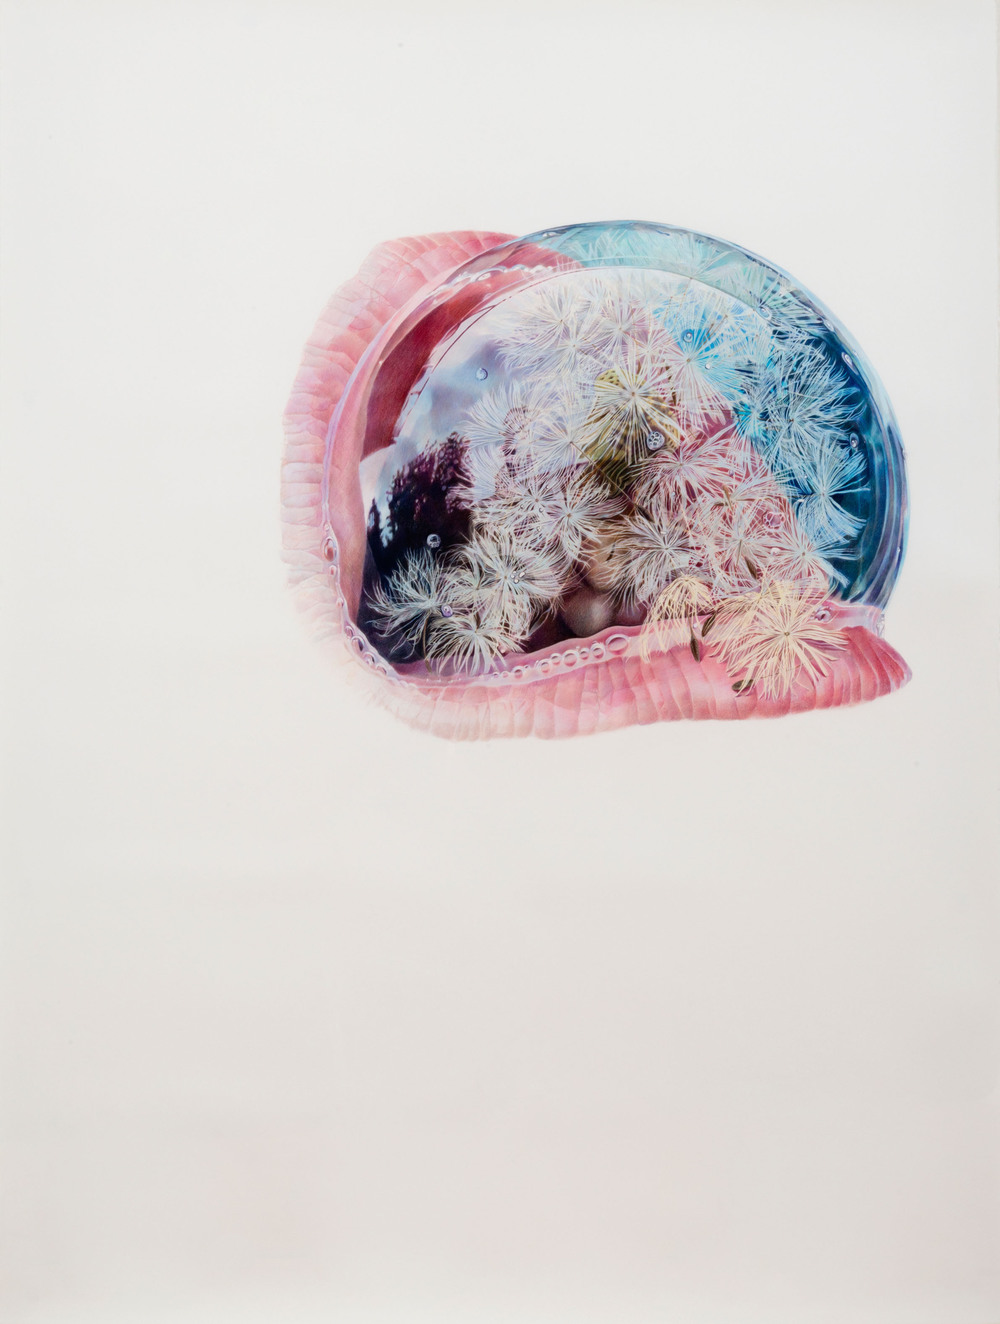 Julia Randall, Dandelion, 2012, colored pencil on paper_sm.jpg